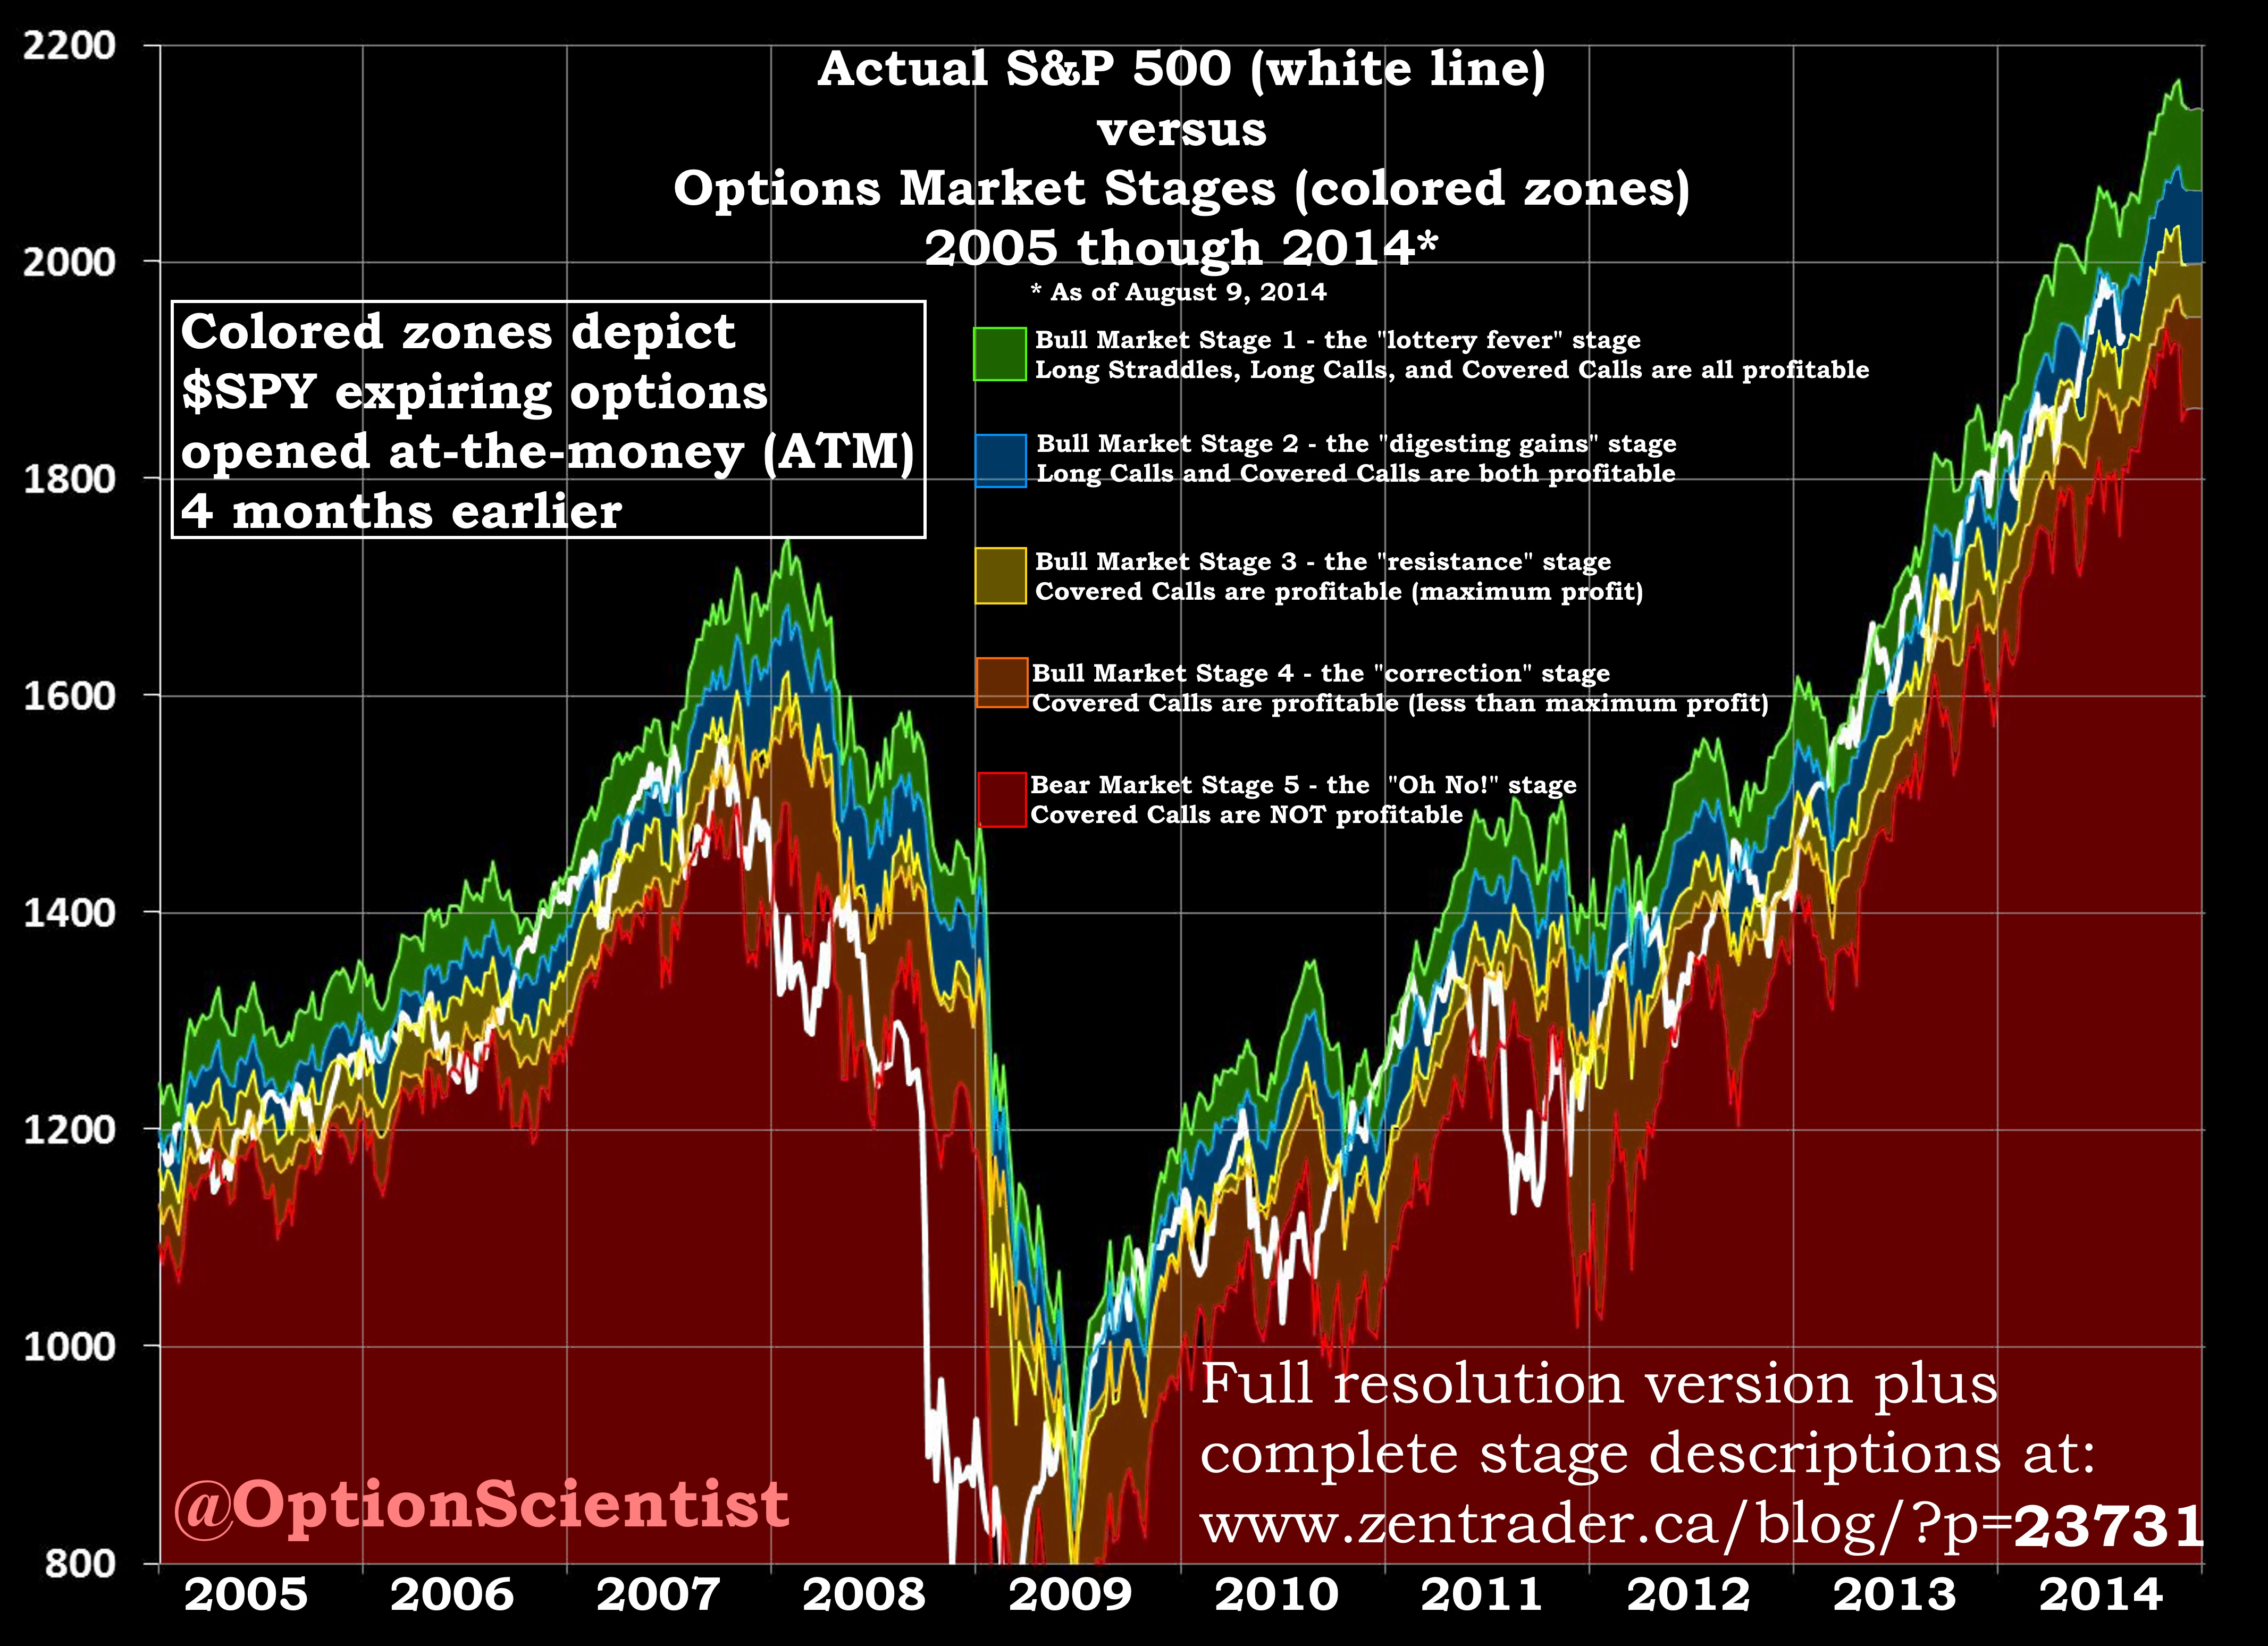 Options Market Stages 2005 to 2014